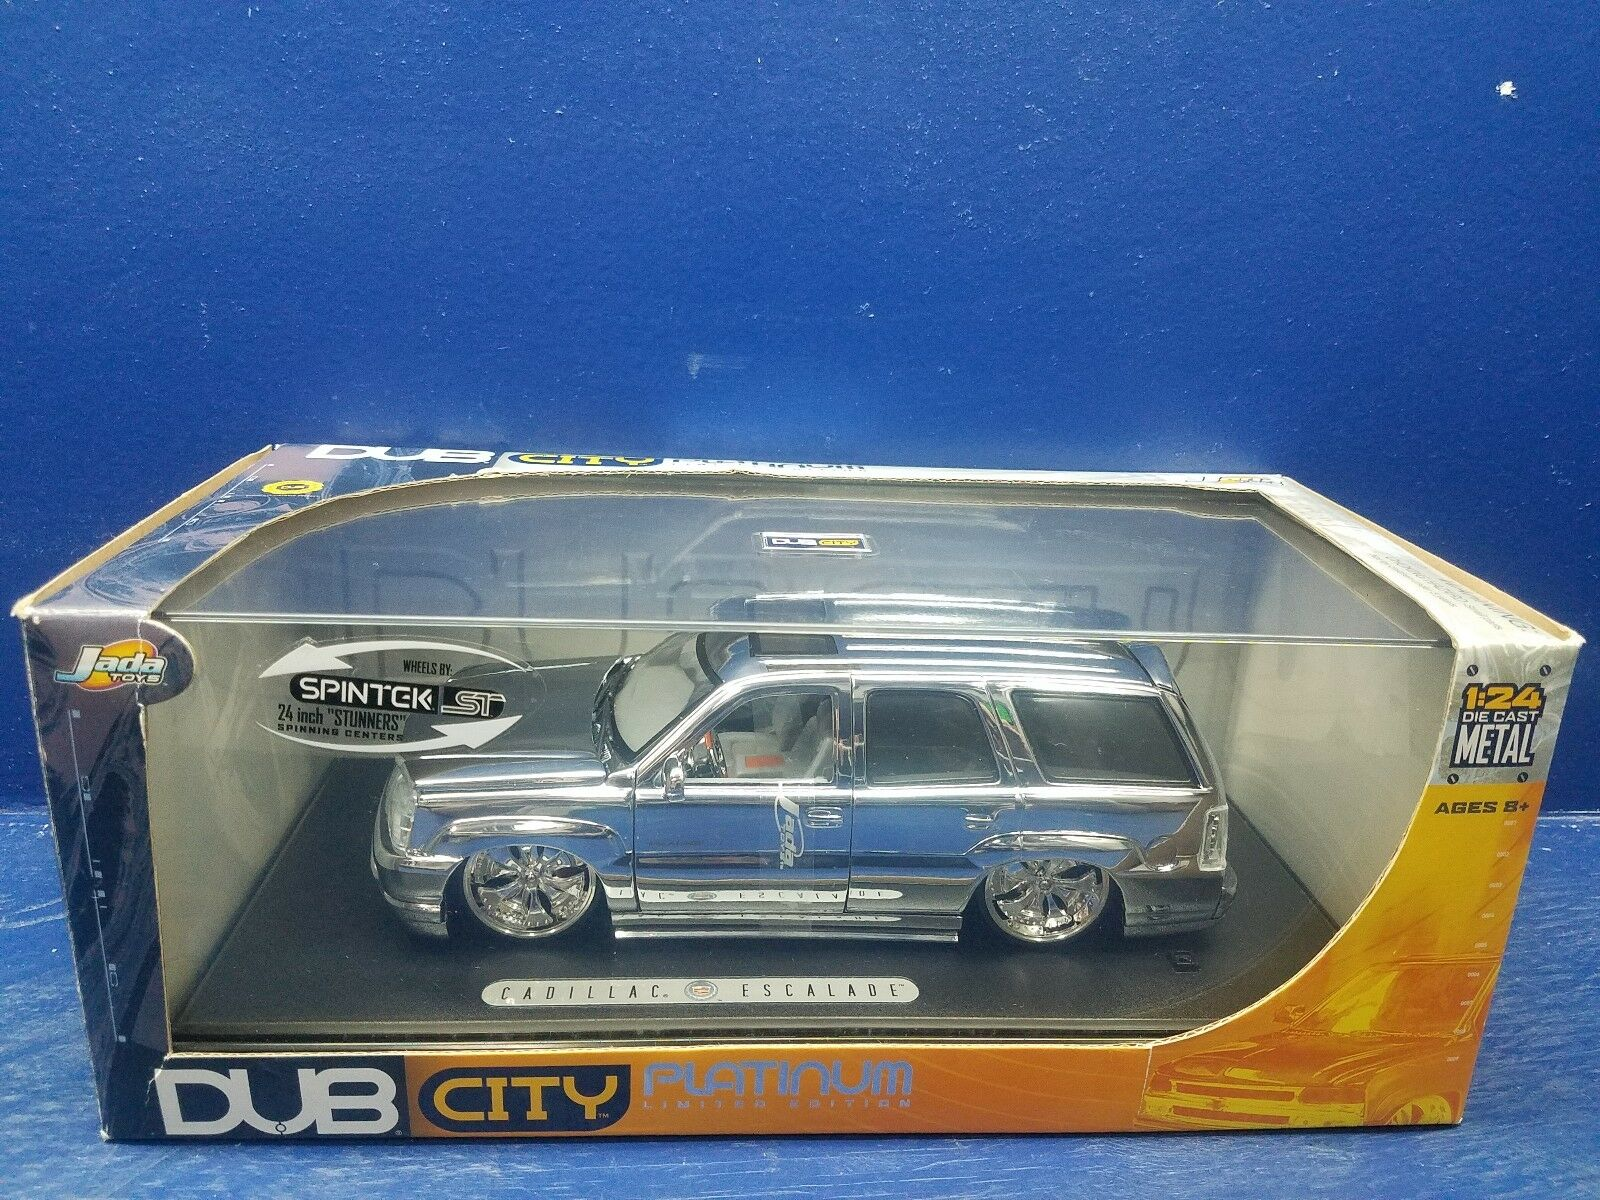 Jada Toys DUB City Cadillac Escalade Platinum Car Limited Edition Die-Cast 1:24